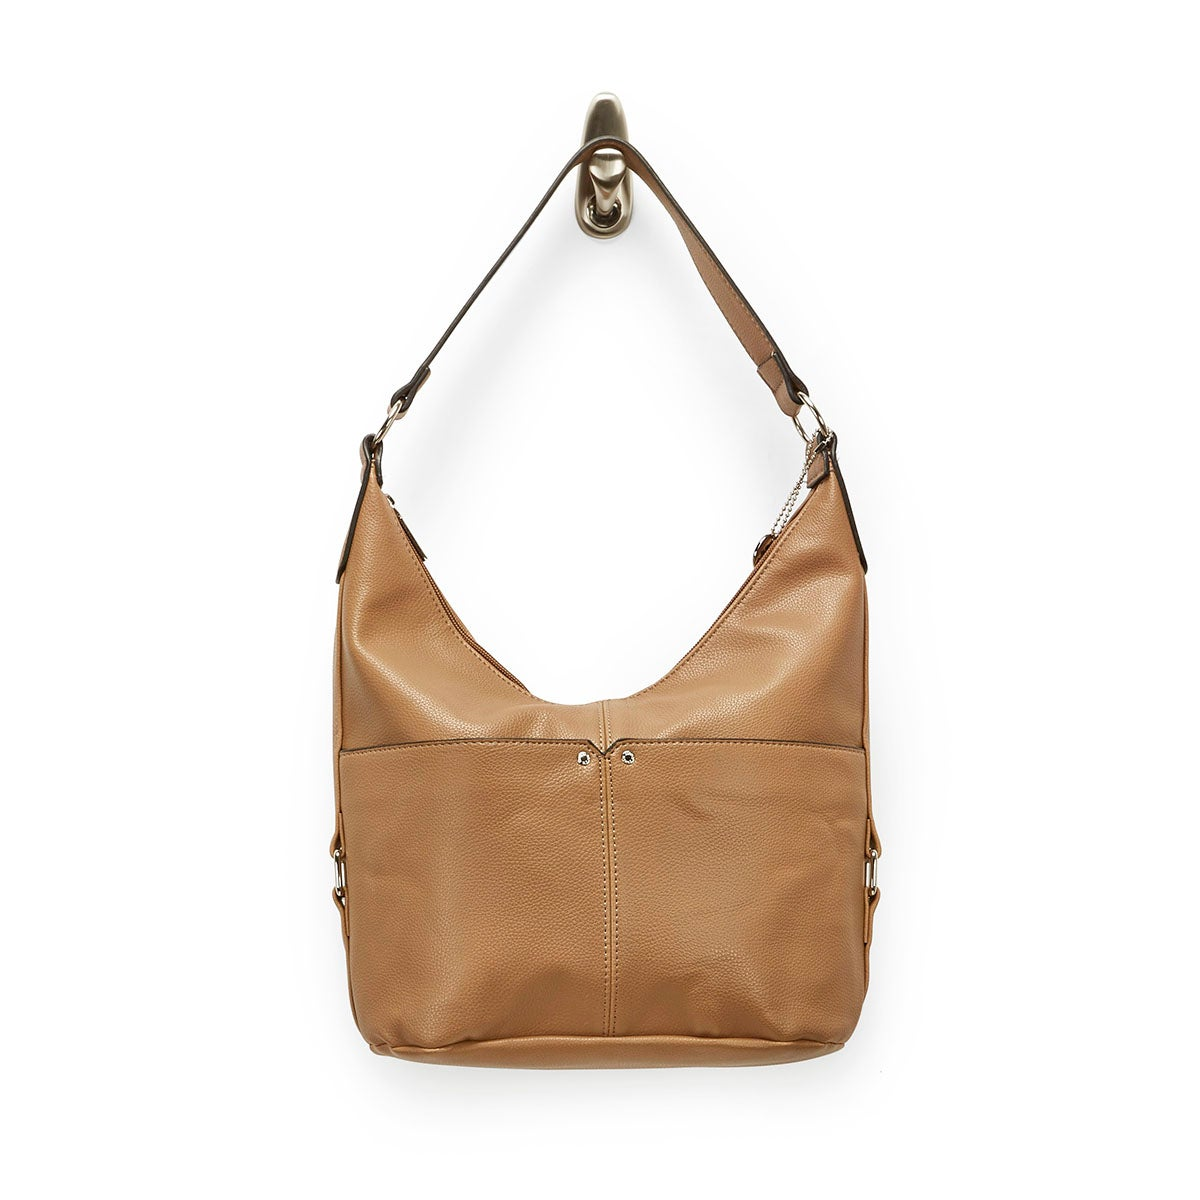 Lds Roots73 camel belted hobo bag